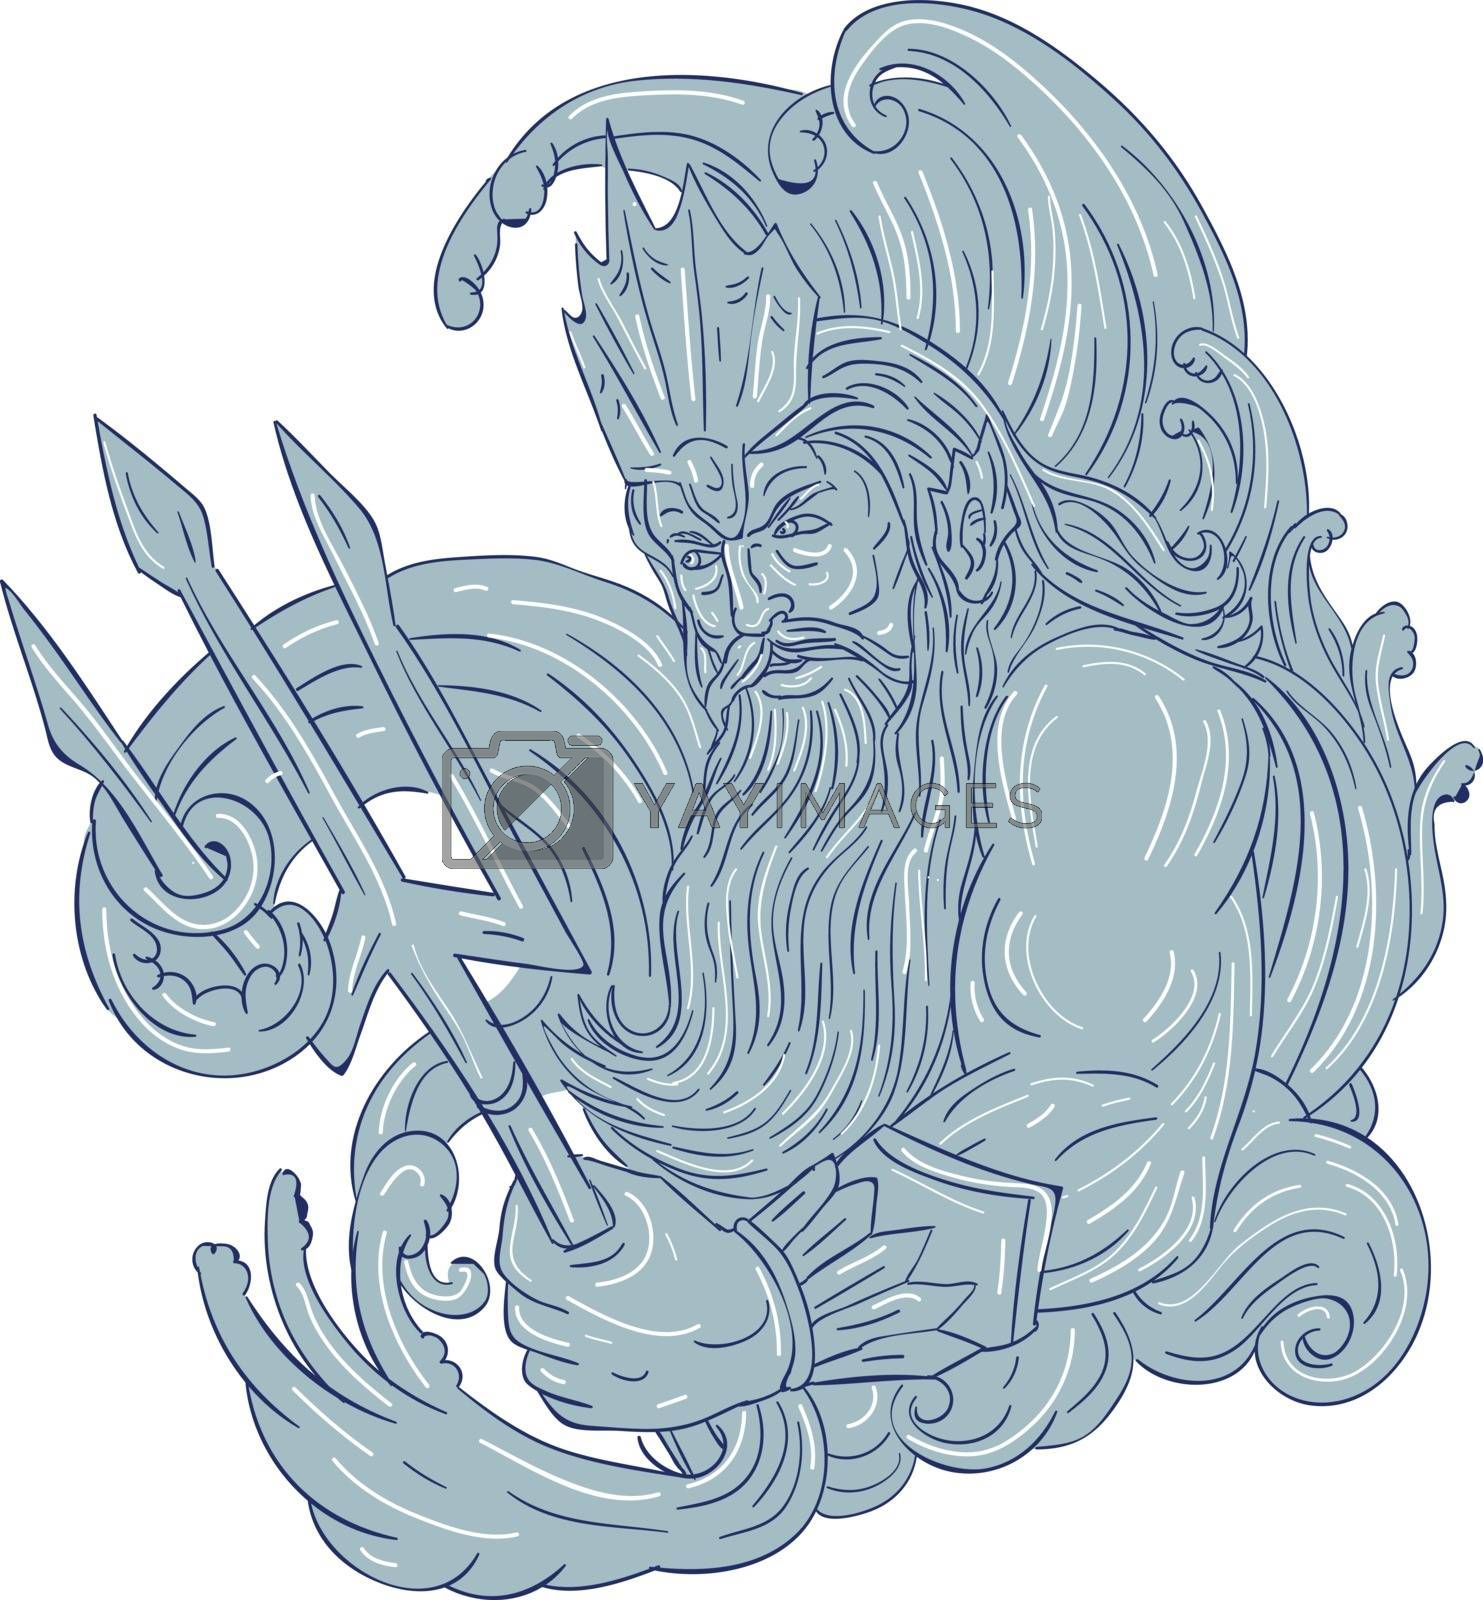 Drawing sketch style illustration of a poseidon god of the sea holding trident surrounded by waves viewed from the side set on isolated white background.